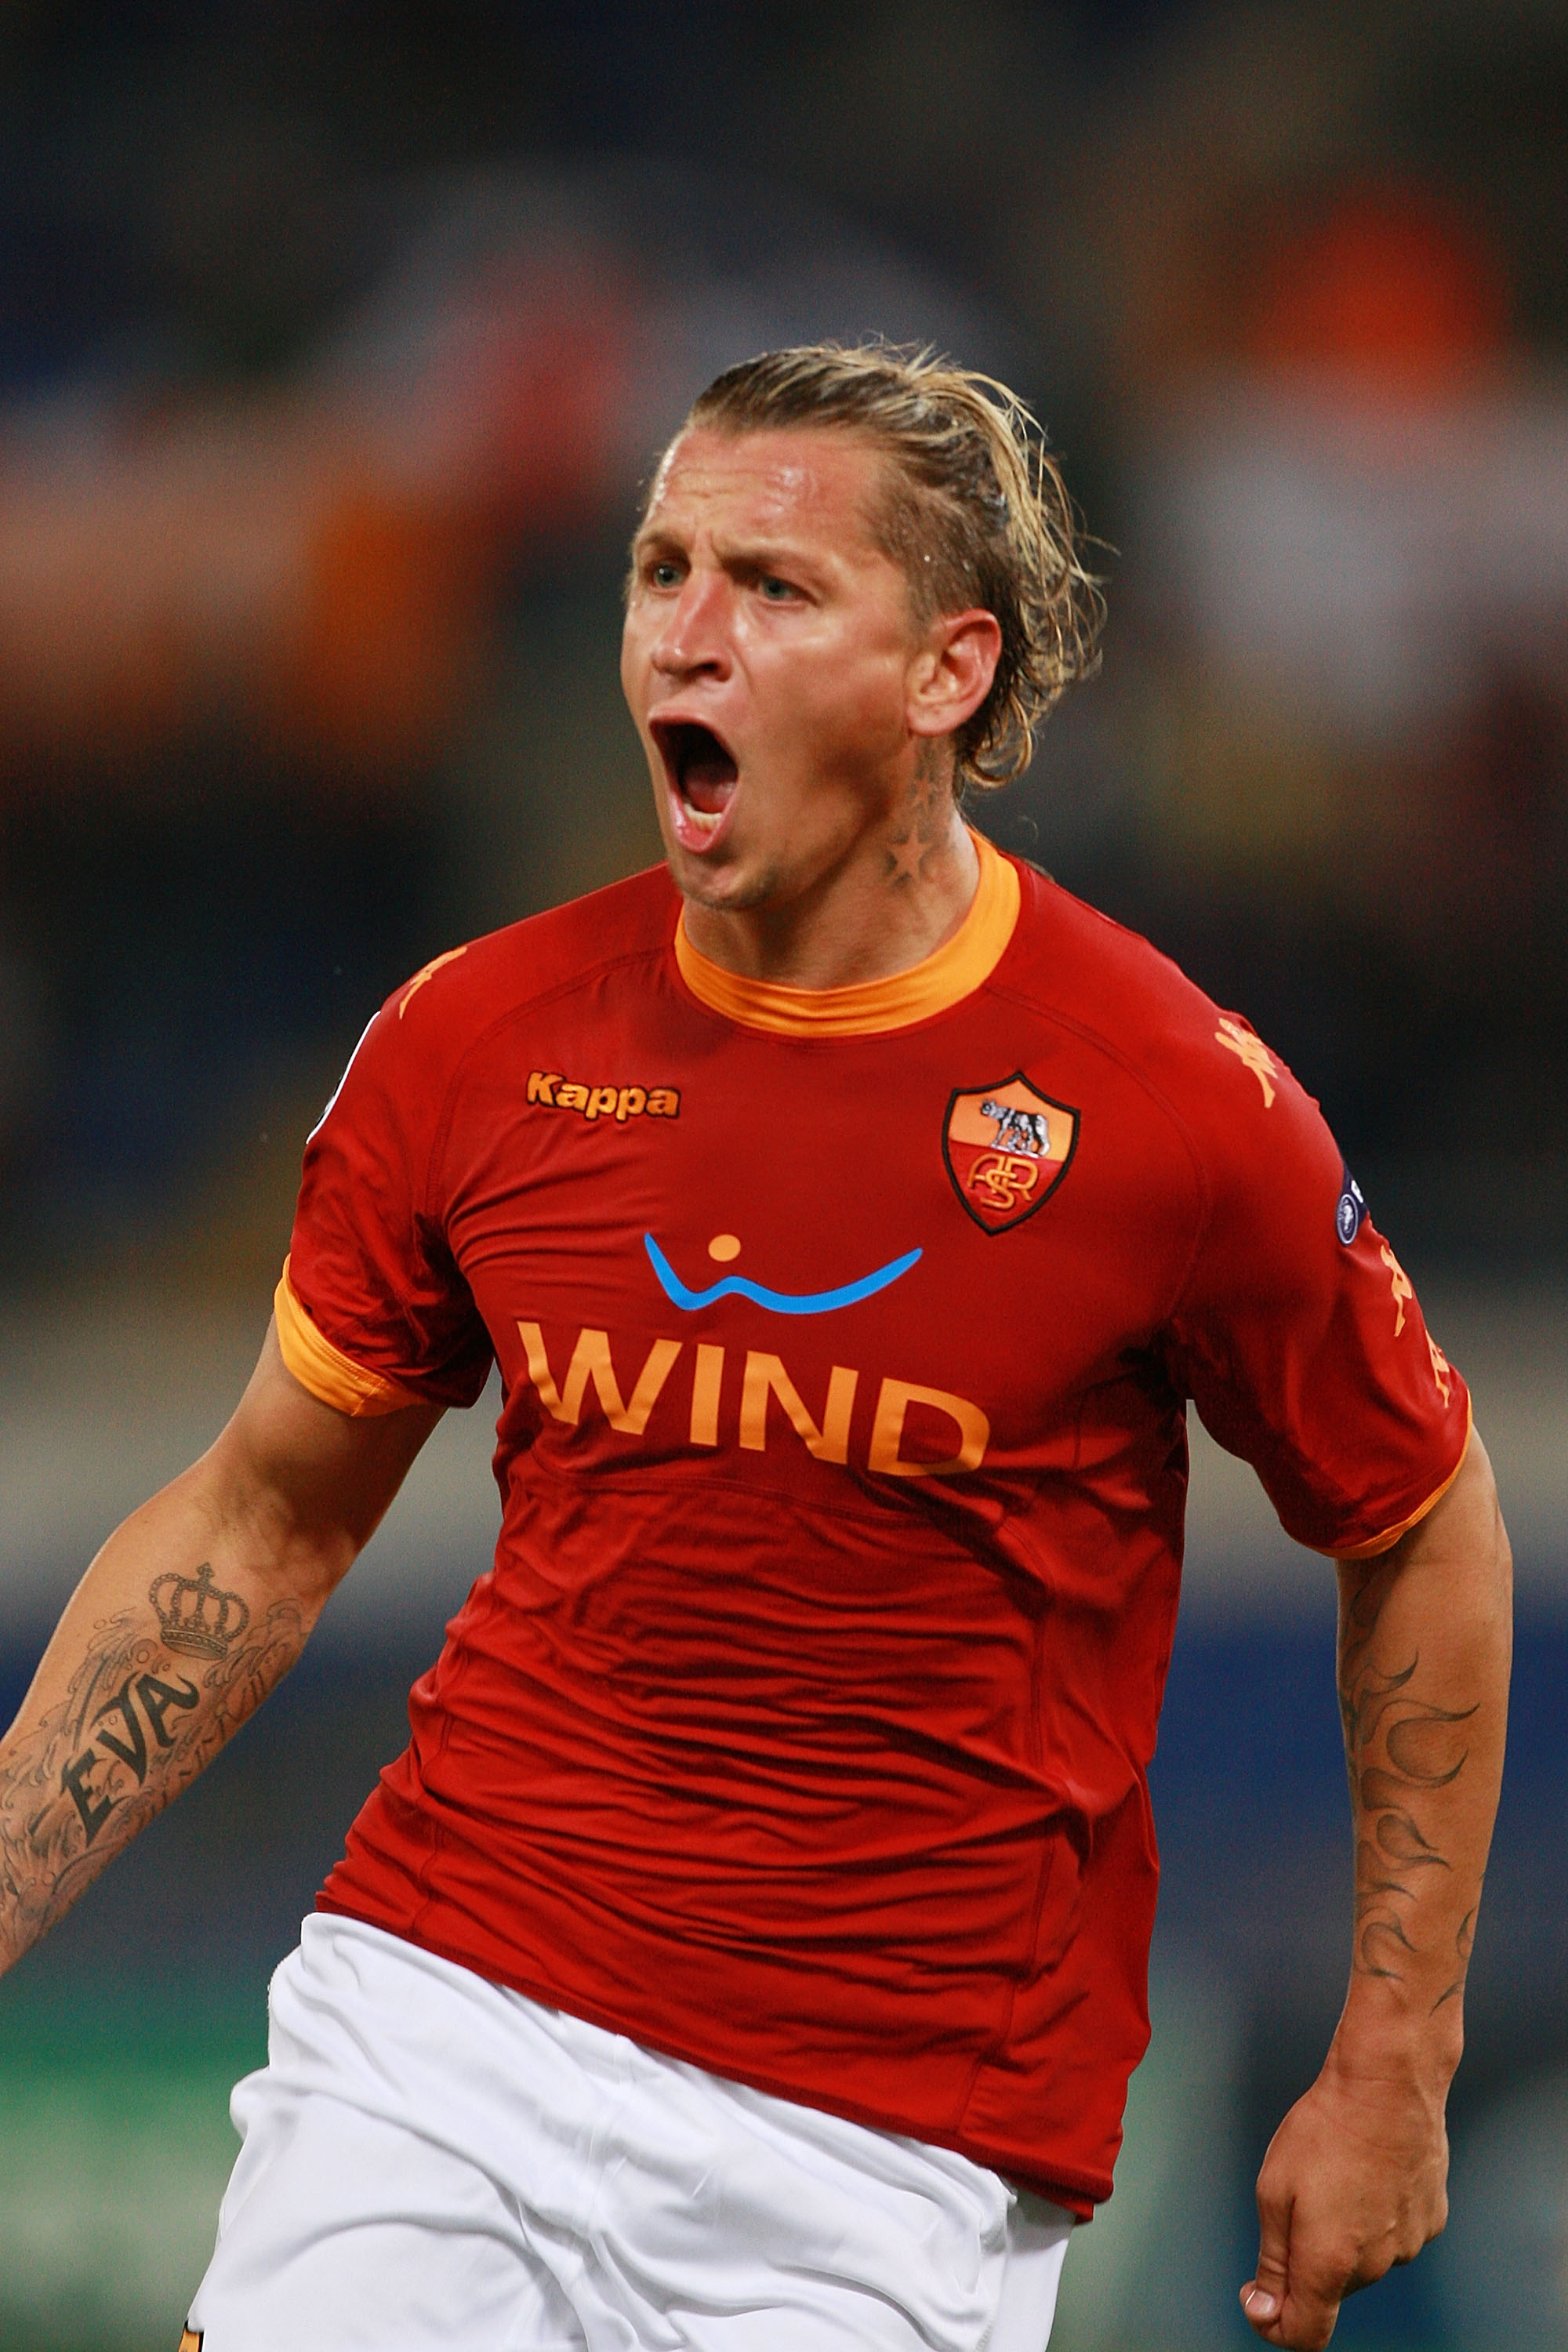 ROME - SEPTEMBER 28:  Philippe Mexes' of AS Roma celebrates after scoring the opening goal during the UEFA Champions League group E match between AS Roma and CFR Cluj at Stadio Olimpico on September 28, 2010 in Rome, Italy.  (Photo by Paolo Bruno/Getty Im